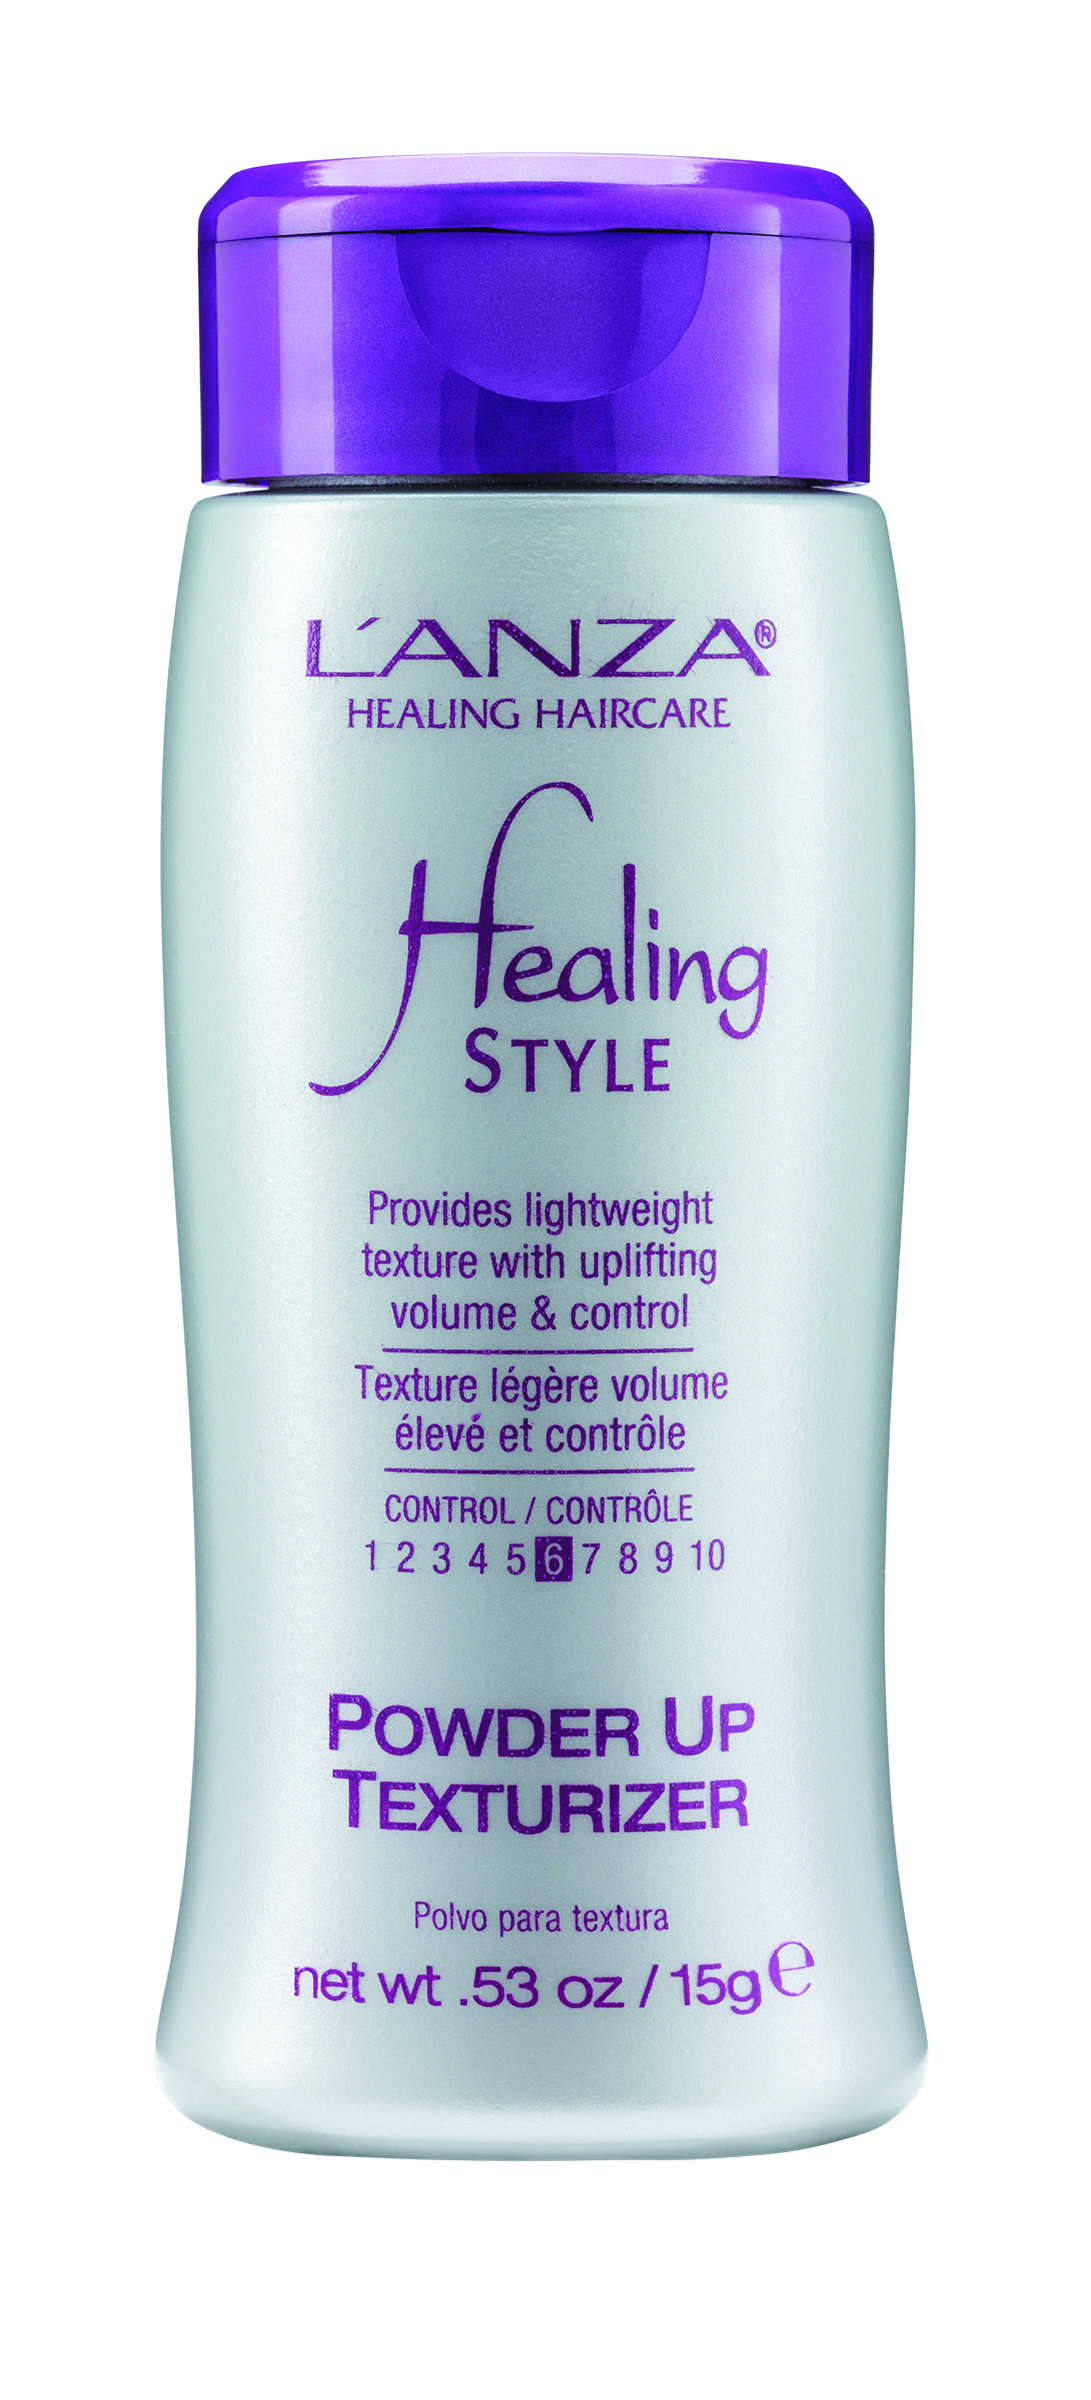 L'Anza Powder Up Texturizer instantly delivers lightweight texture and volume. The unique silica powder dissolves immediately and provides thermal protection up to 500 degrees.